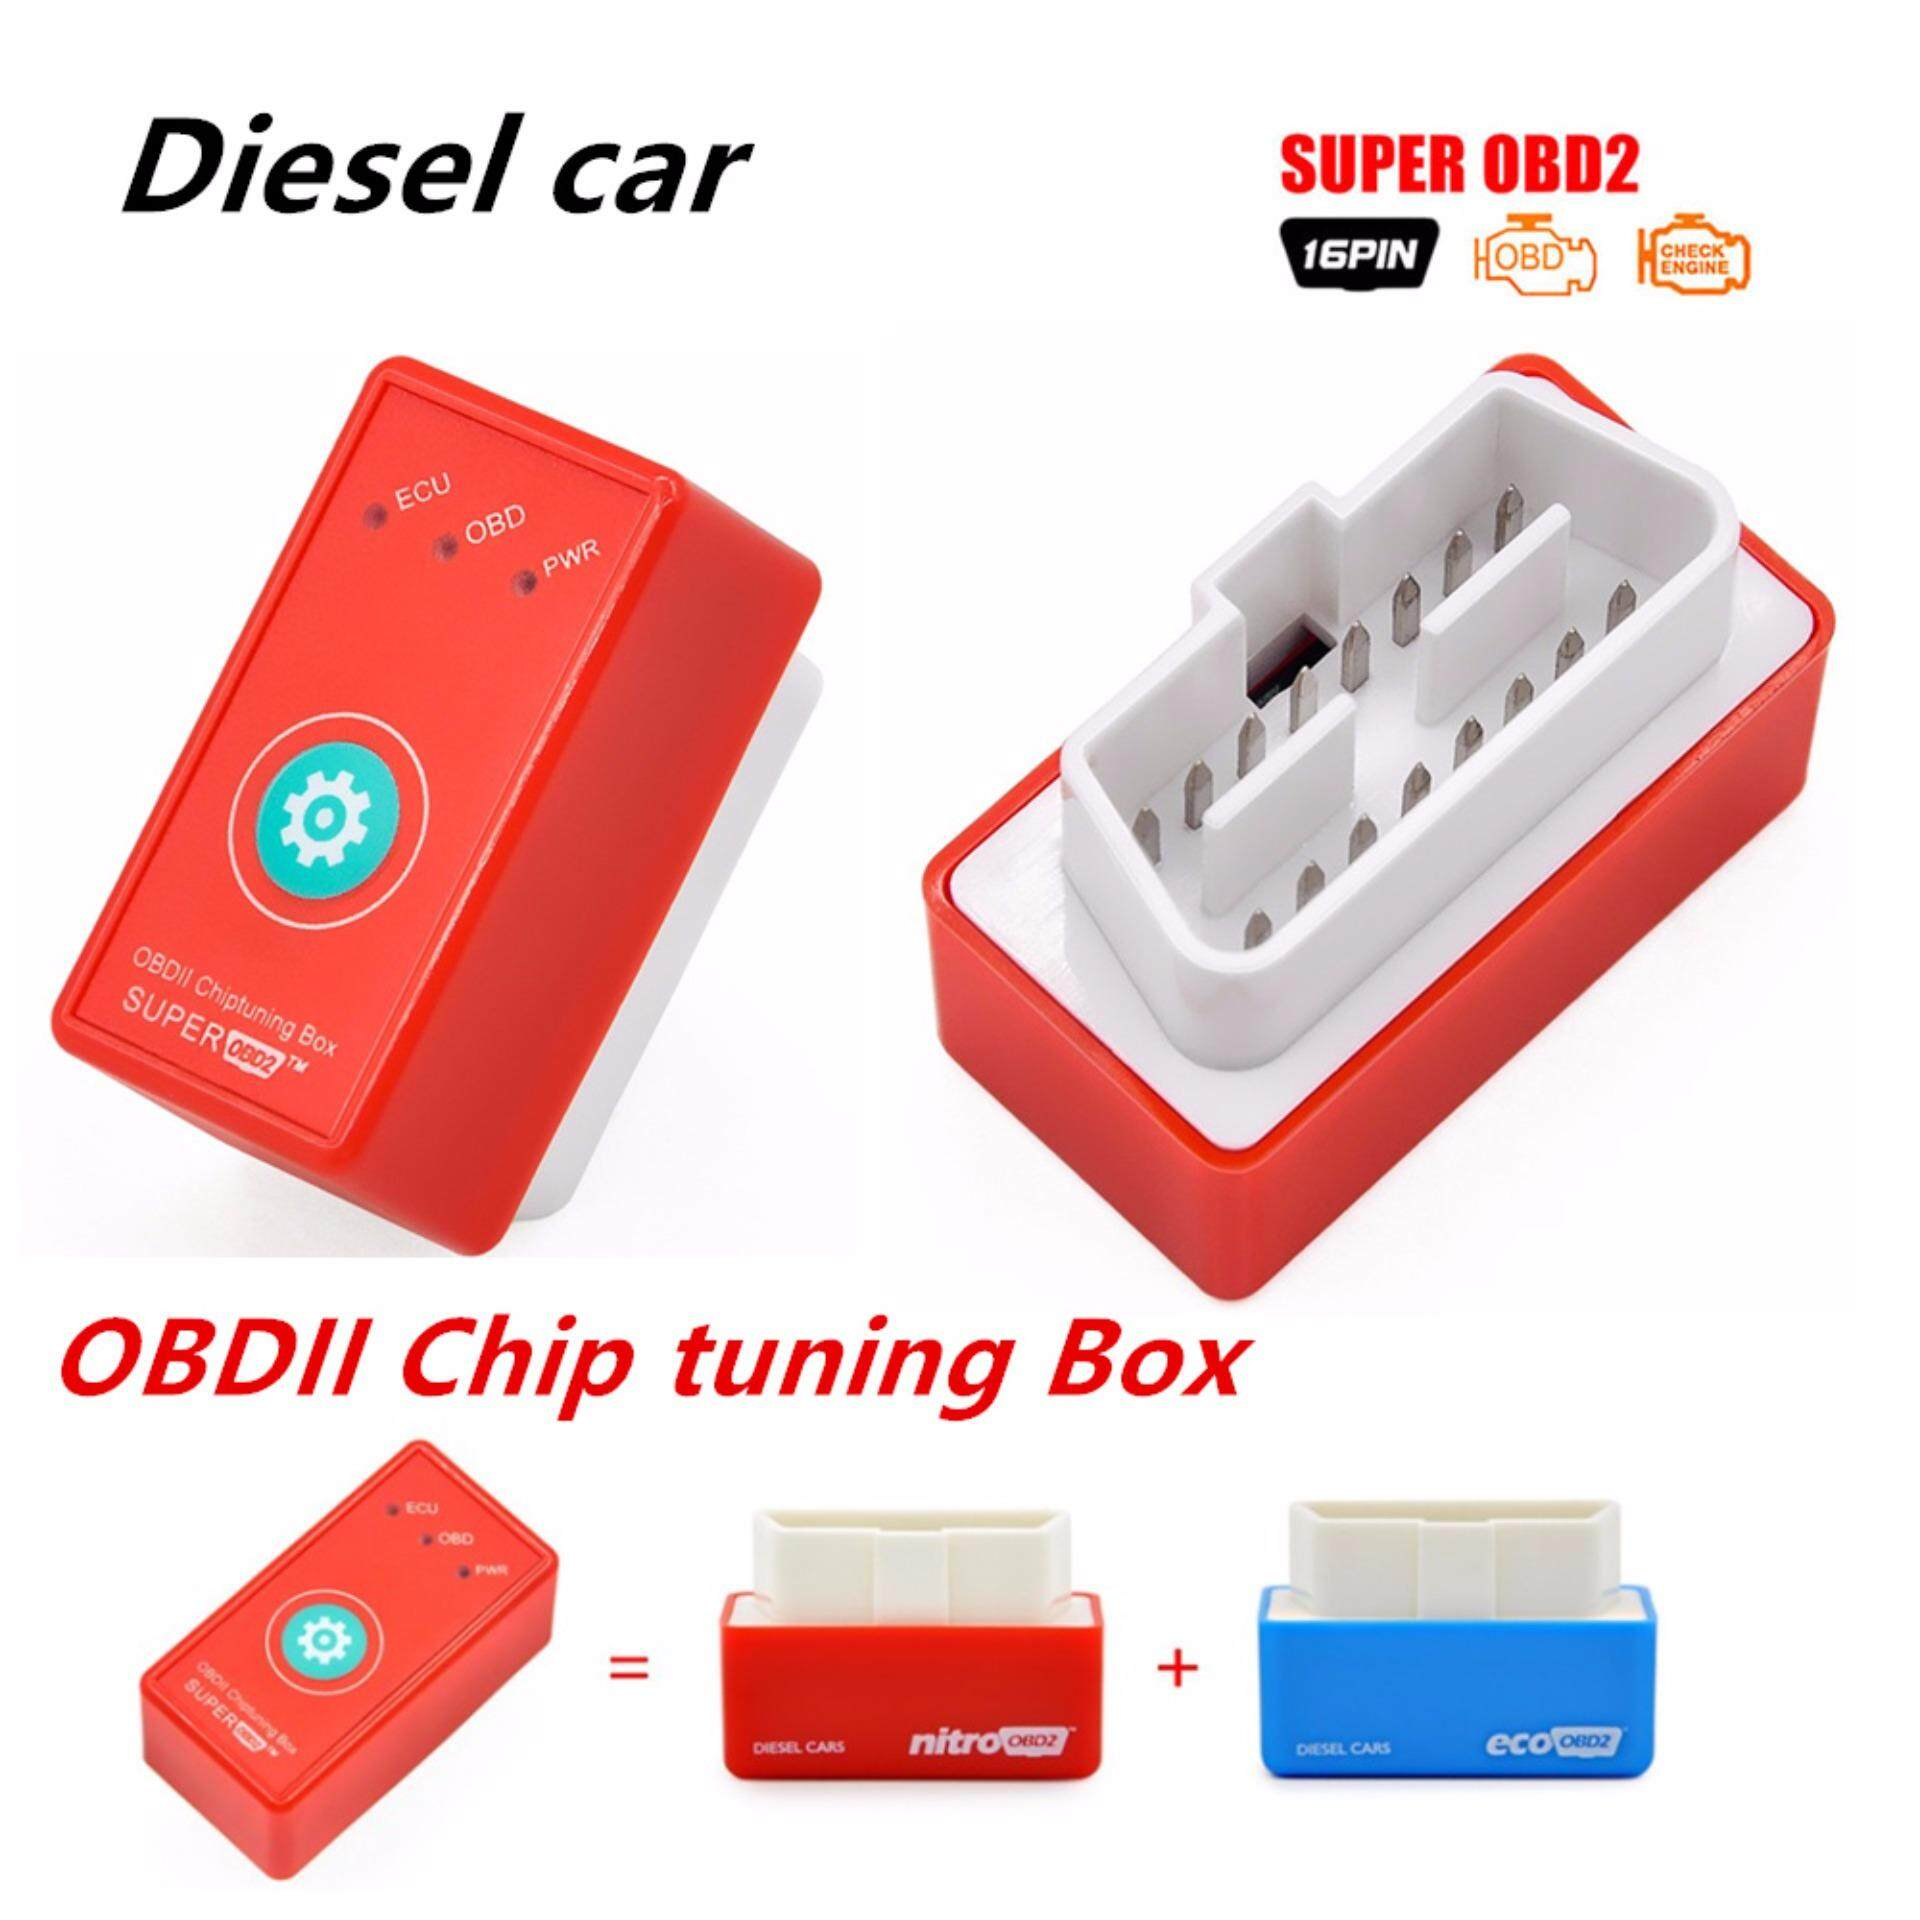 More Power More Torque OBD2 Upgrade Reset Function Super OBD2 ECU Chip  Tuning Red Diesel Better Than Nitro OBD2 (Red)[Diesel Version]